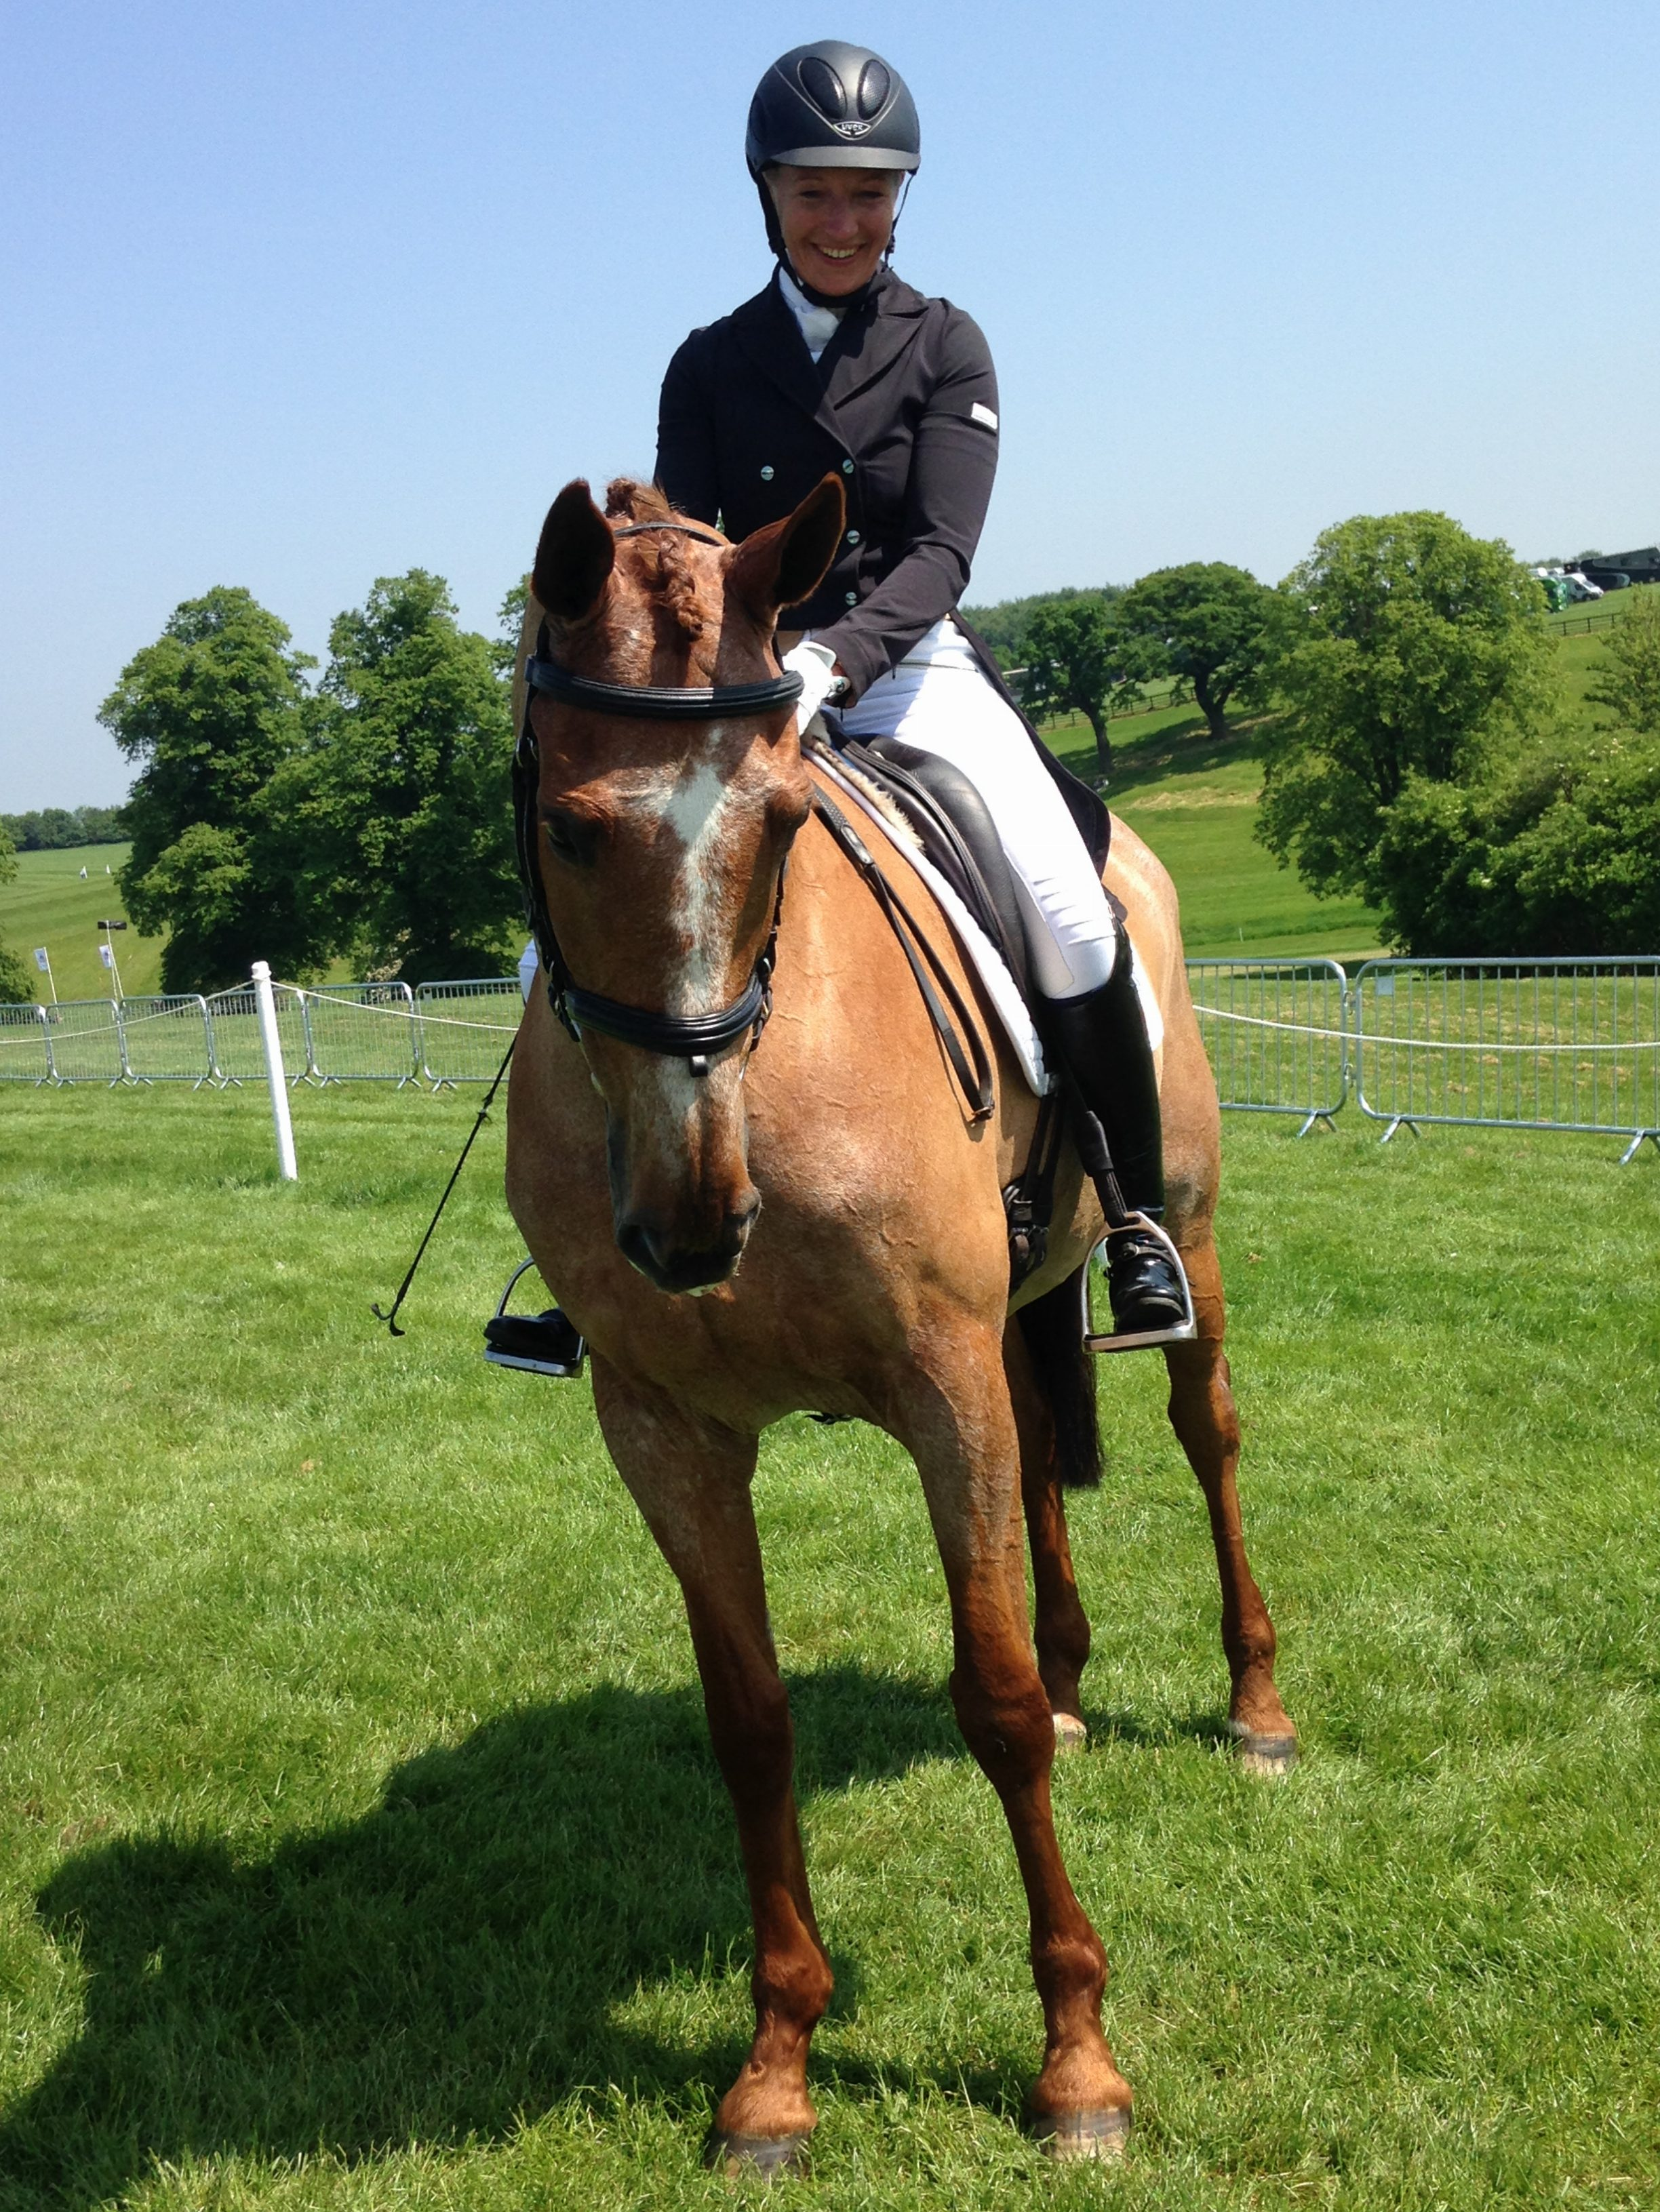 Pinks at Bramham - the most adorable horse ever!